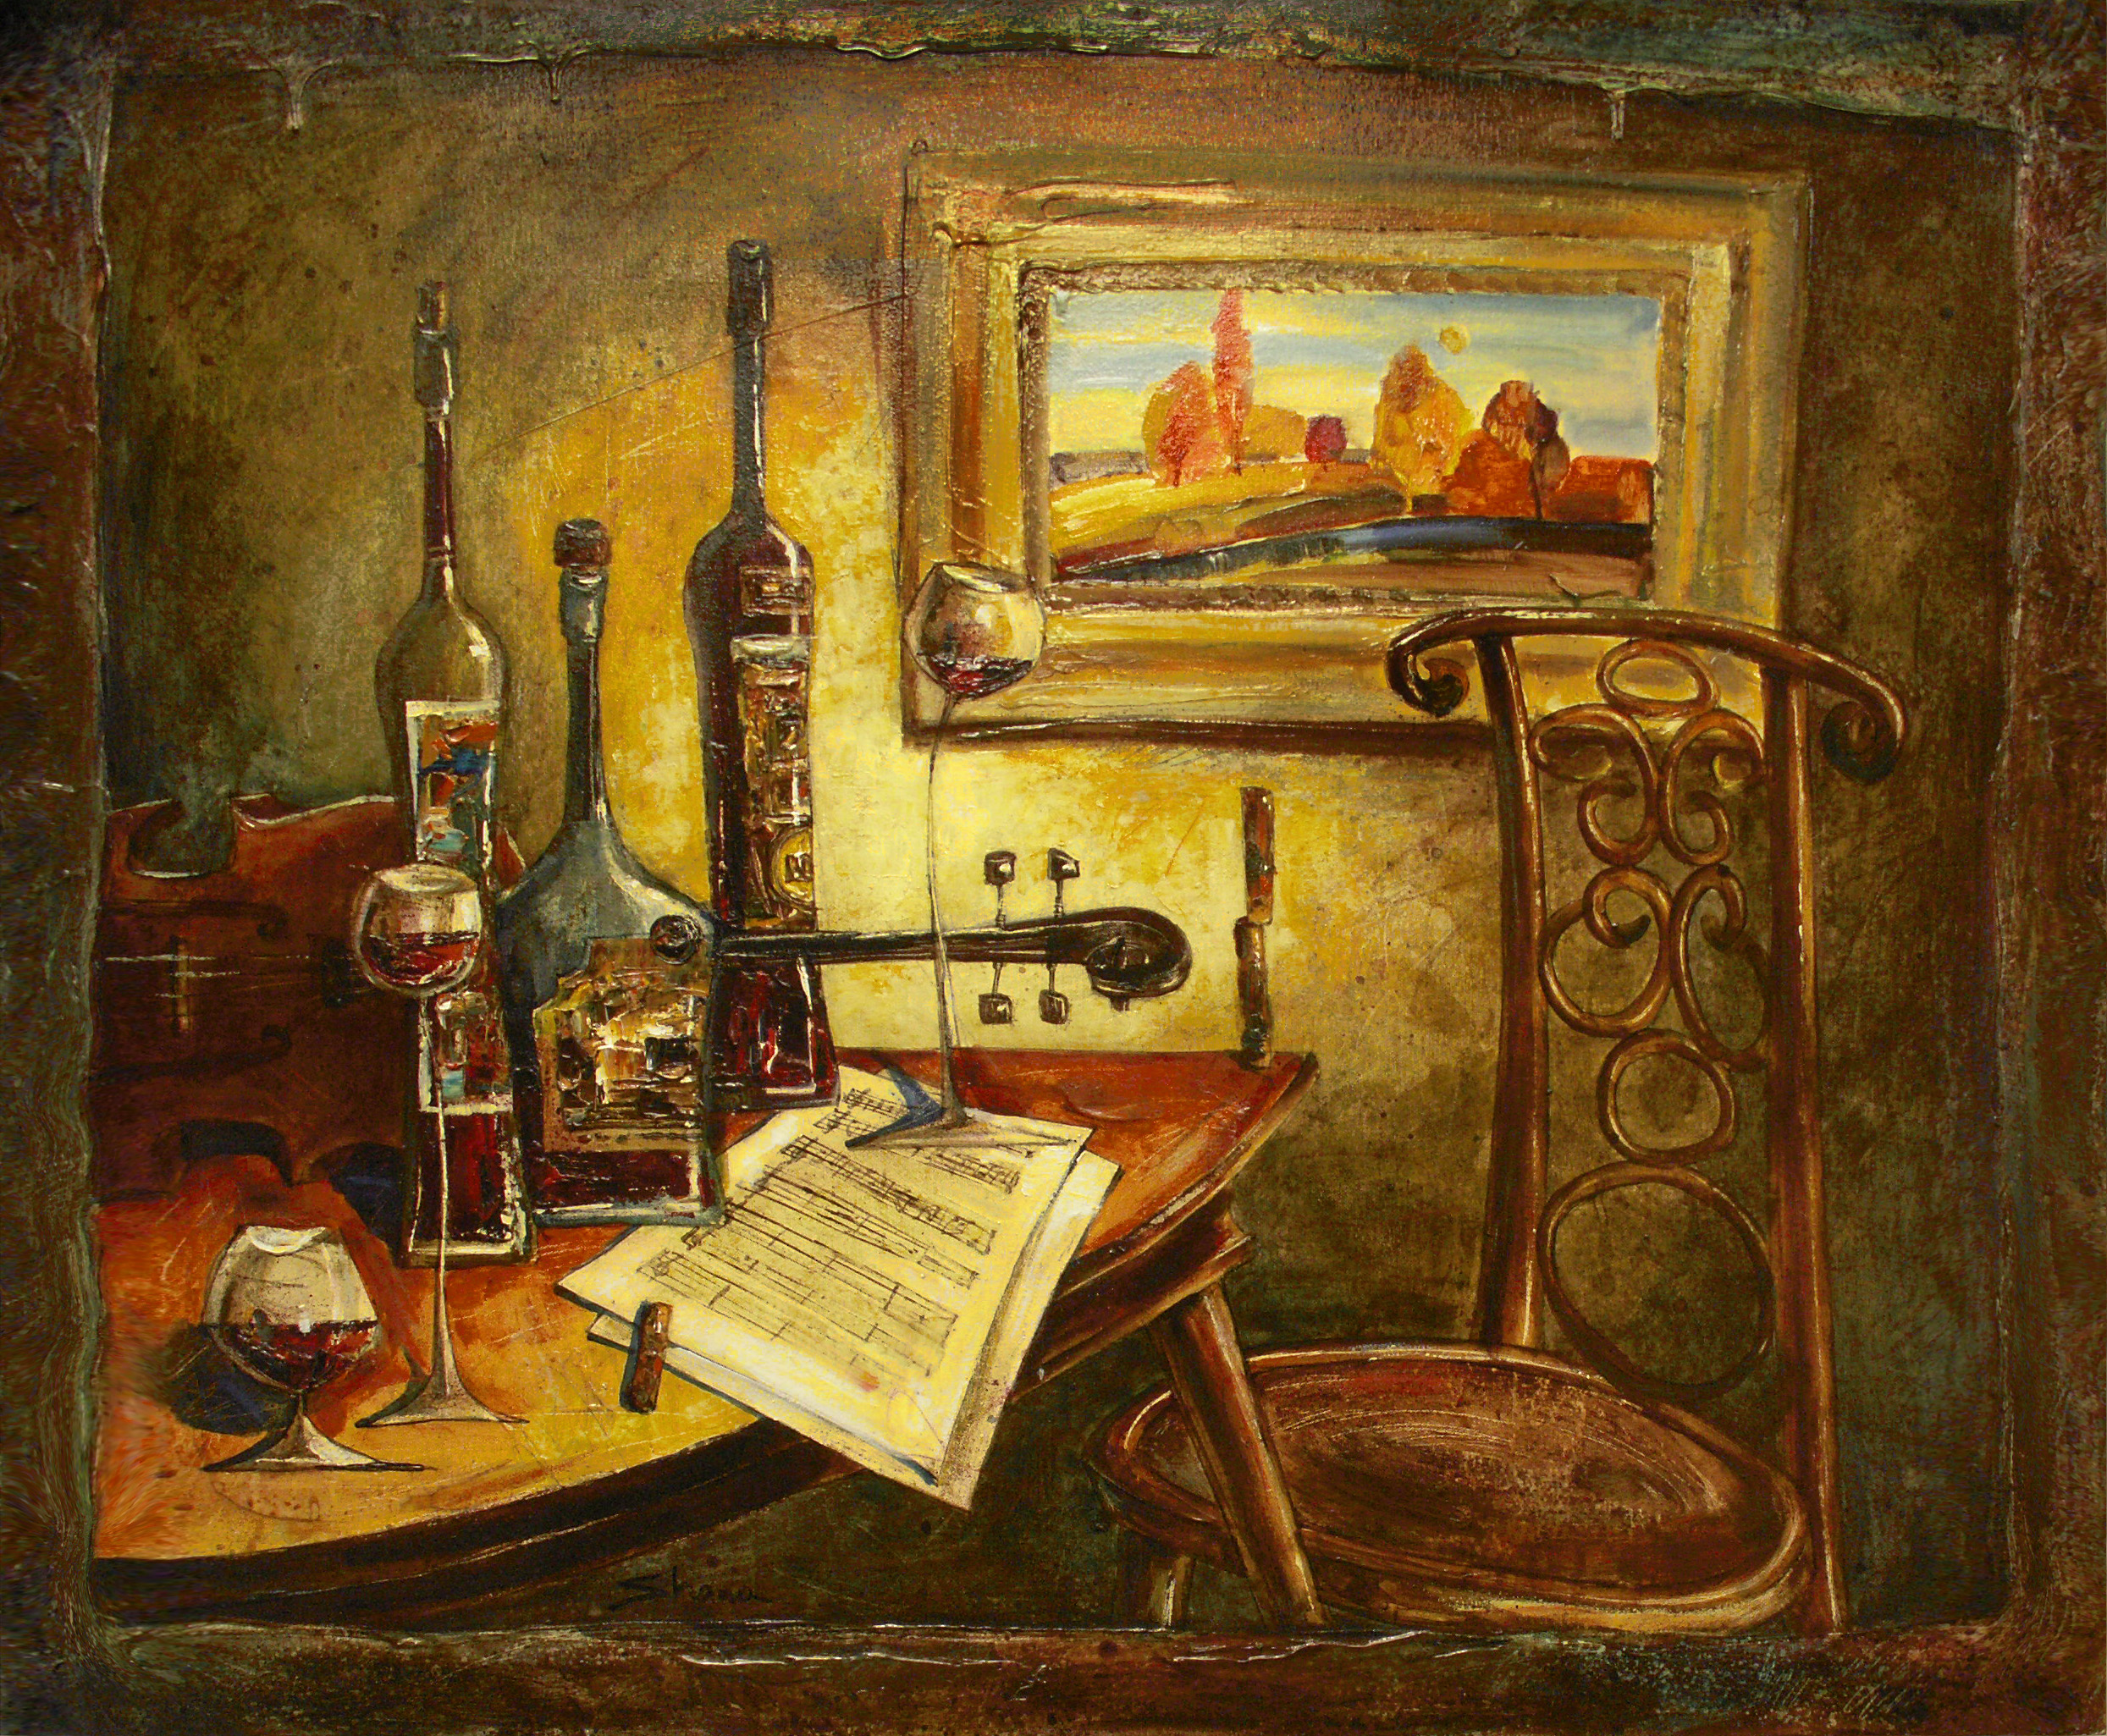 Still Life With Wine Bottles VII